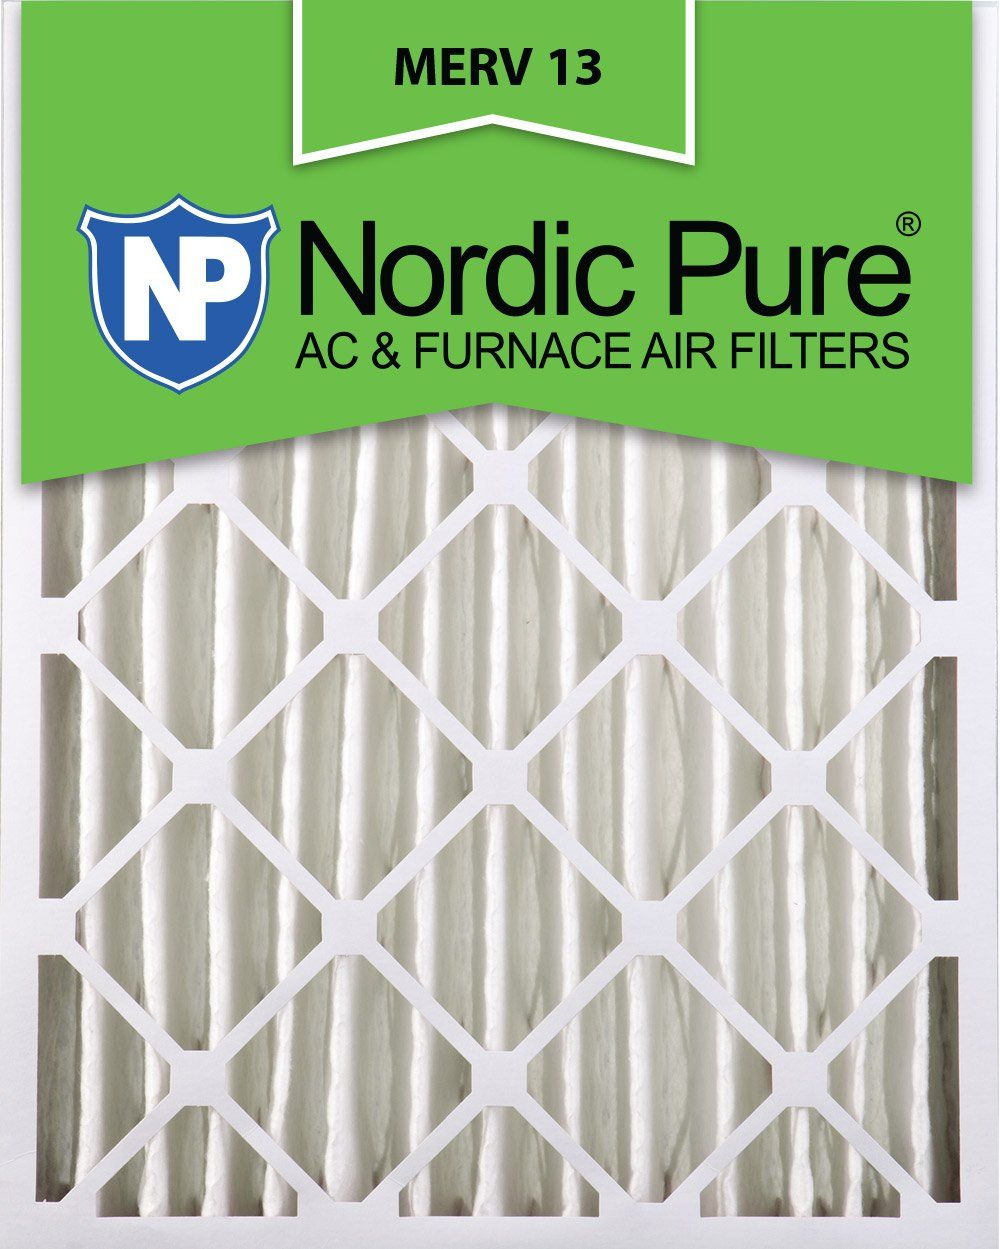 Nordic Pure 20x24x4 (35/8 Actual Depth) MERV 13 Pleated